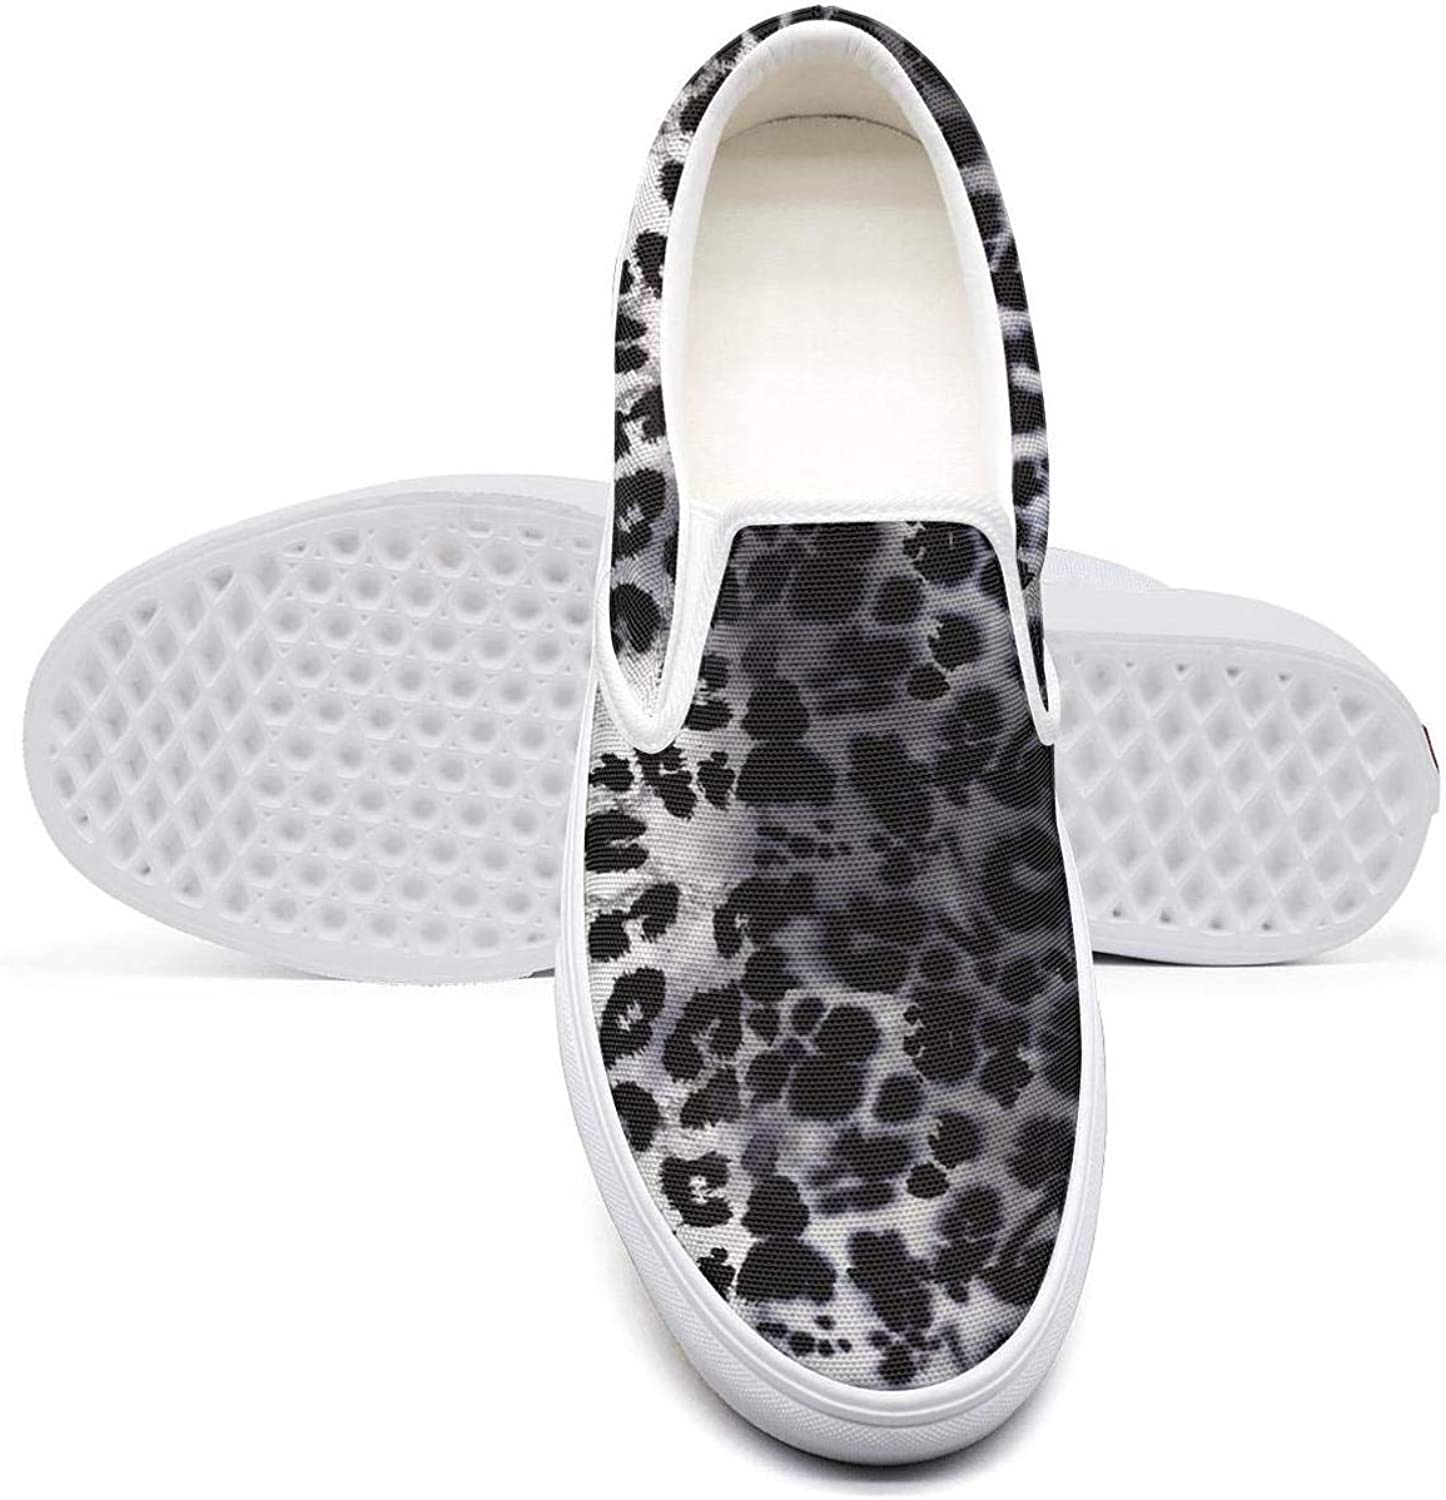 Eredfs Leopard Cheetah Print Ink Black Men's Gift Classic Canvas Sneakers Fashion Tennis shoes